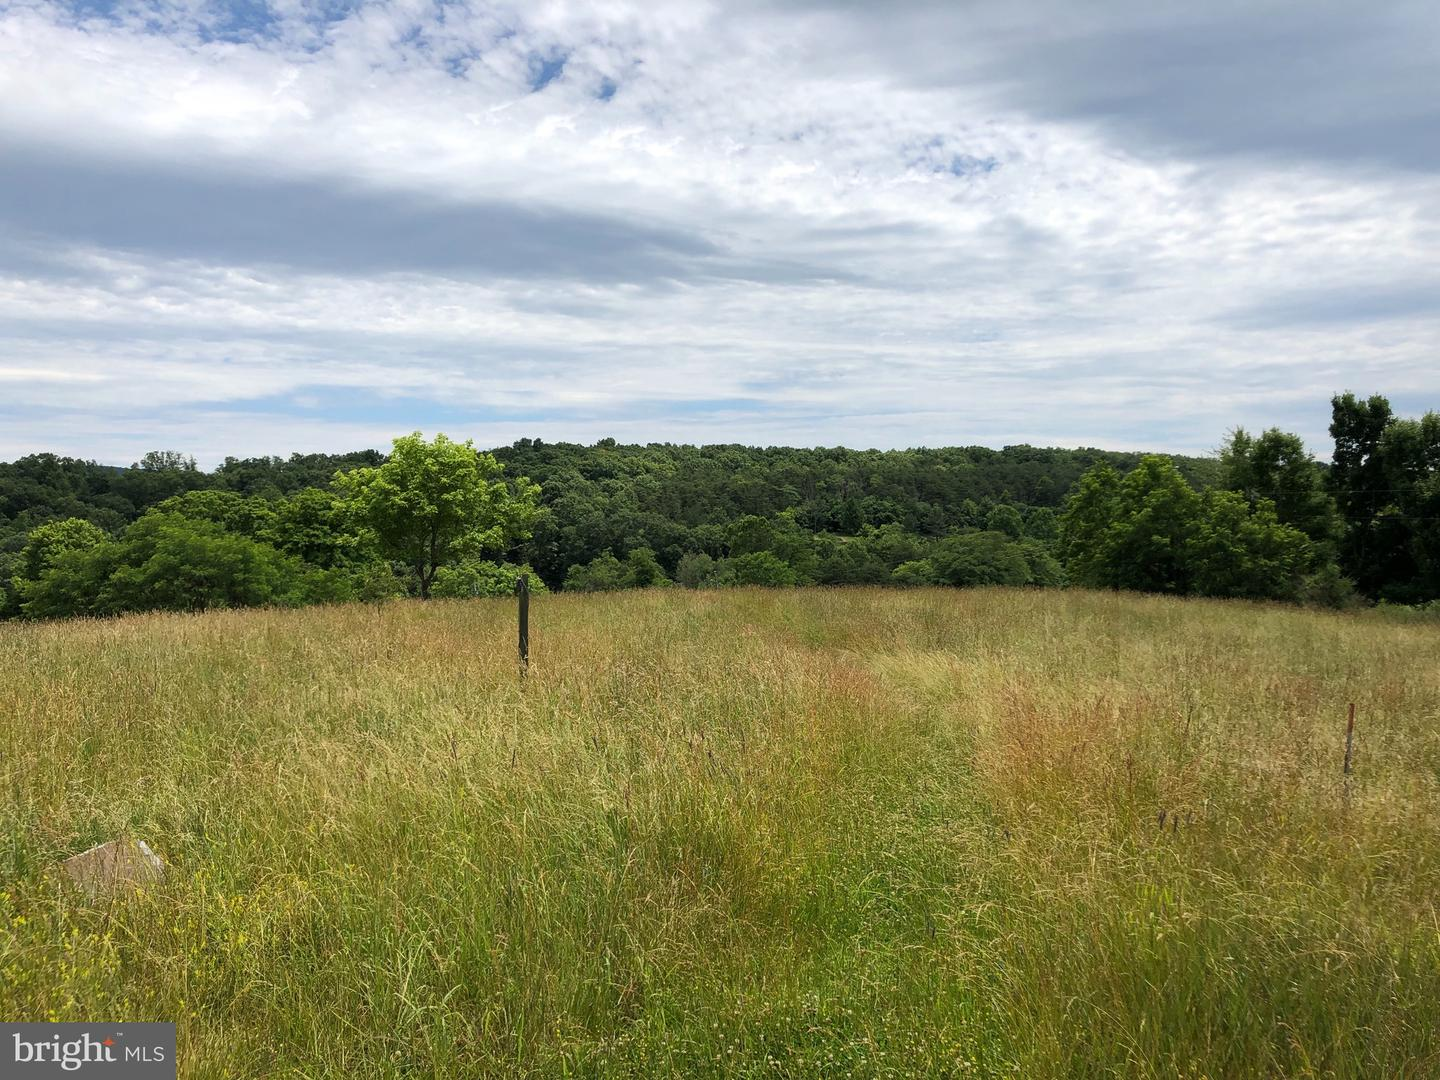 Land for Sale at 40 C & C Ln Berkeley Springs, West Virginia 25411 United States